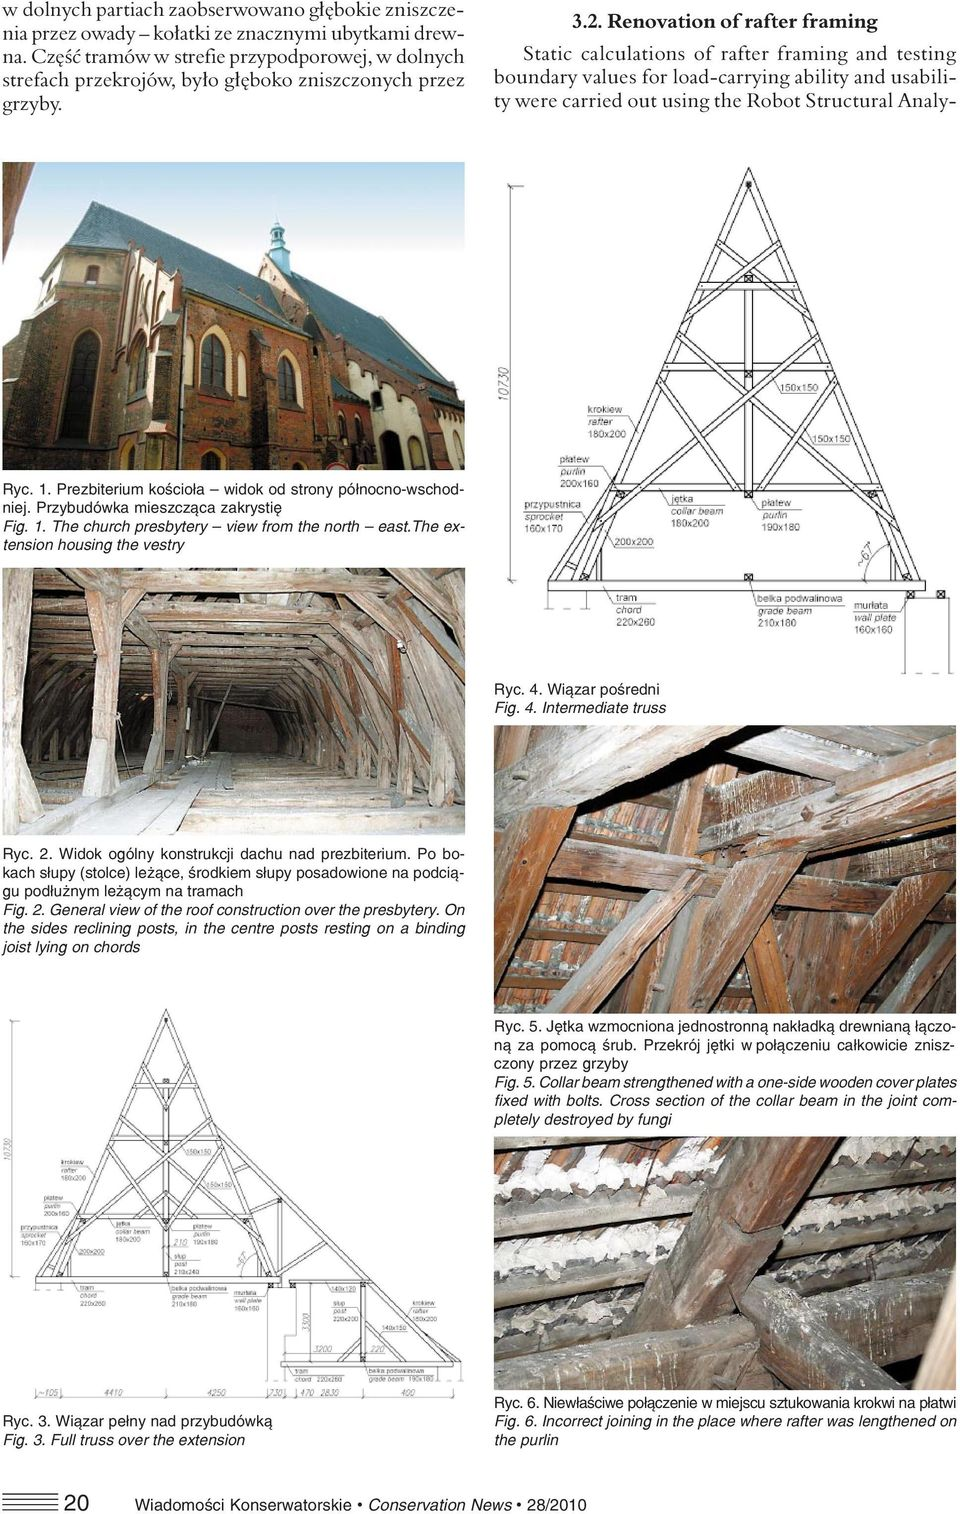 Renovation of rafter framing Static calculations of rafter framing and testing boundary values for load-carrying ability and usability were carried out using the Robot Structural Analy- Ryc. 1.